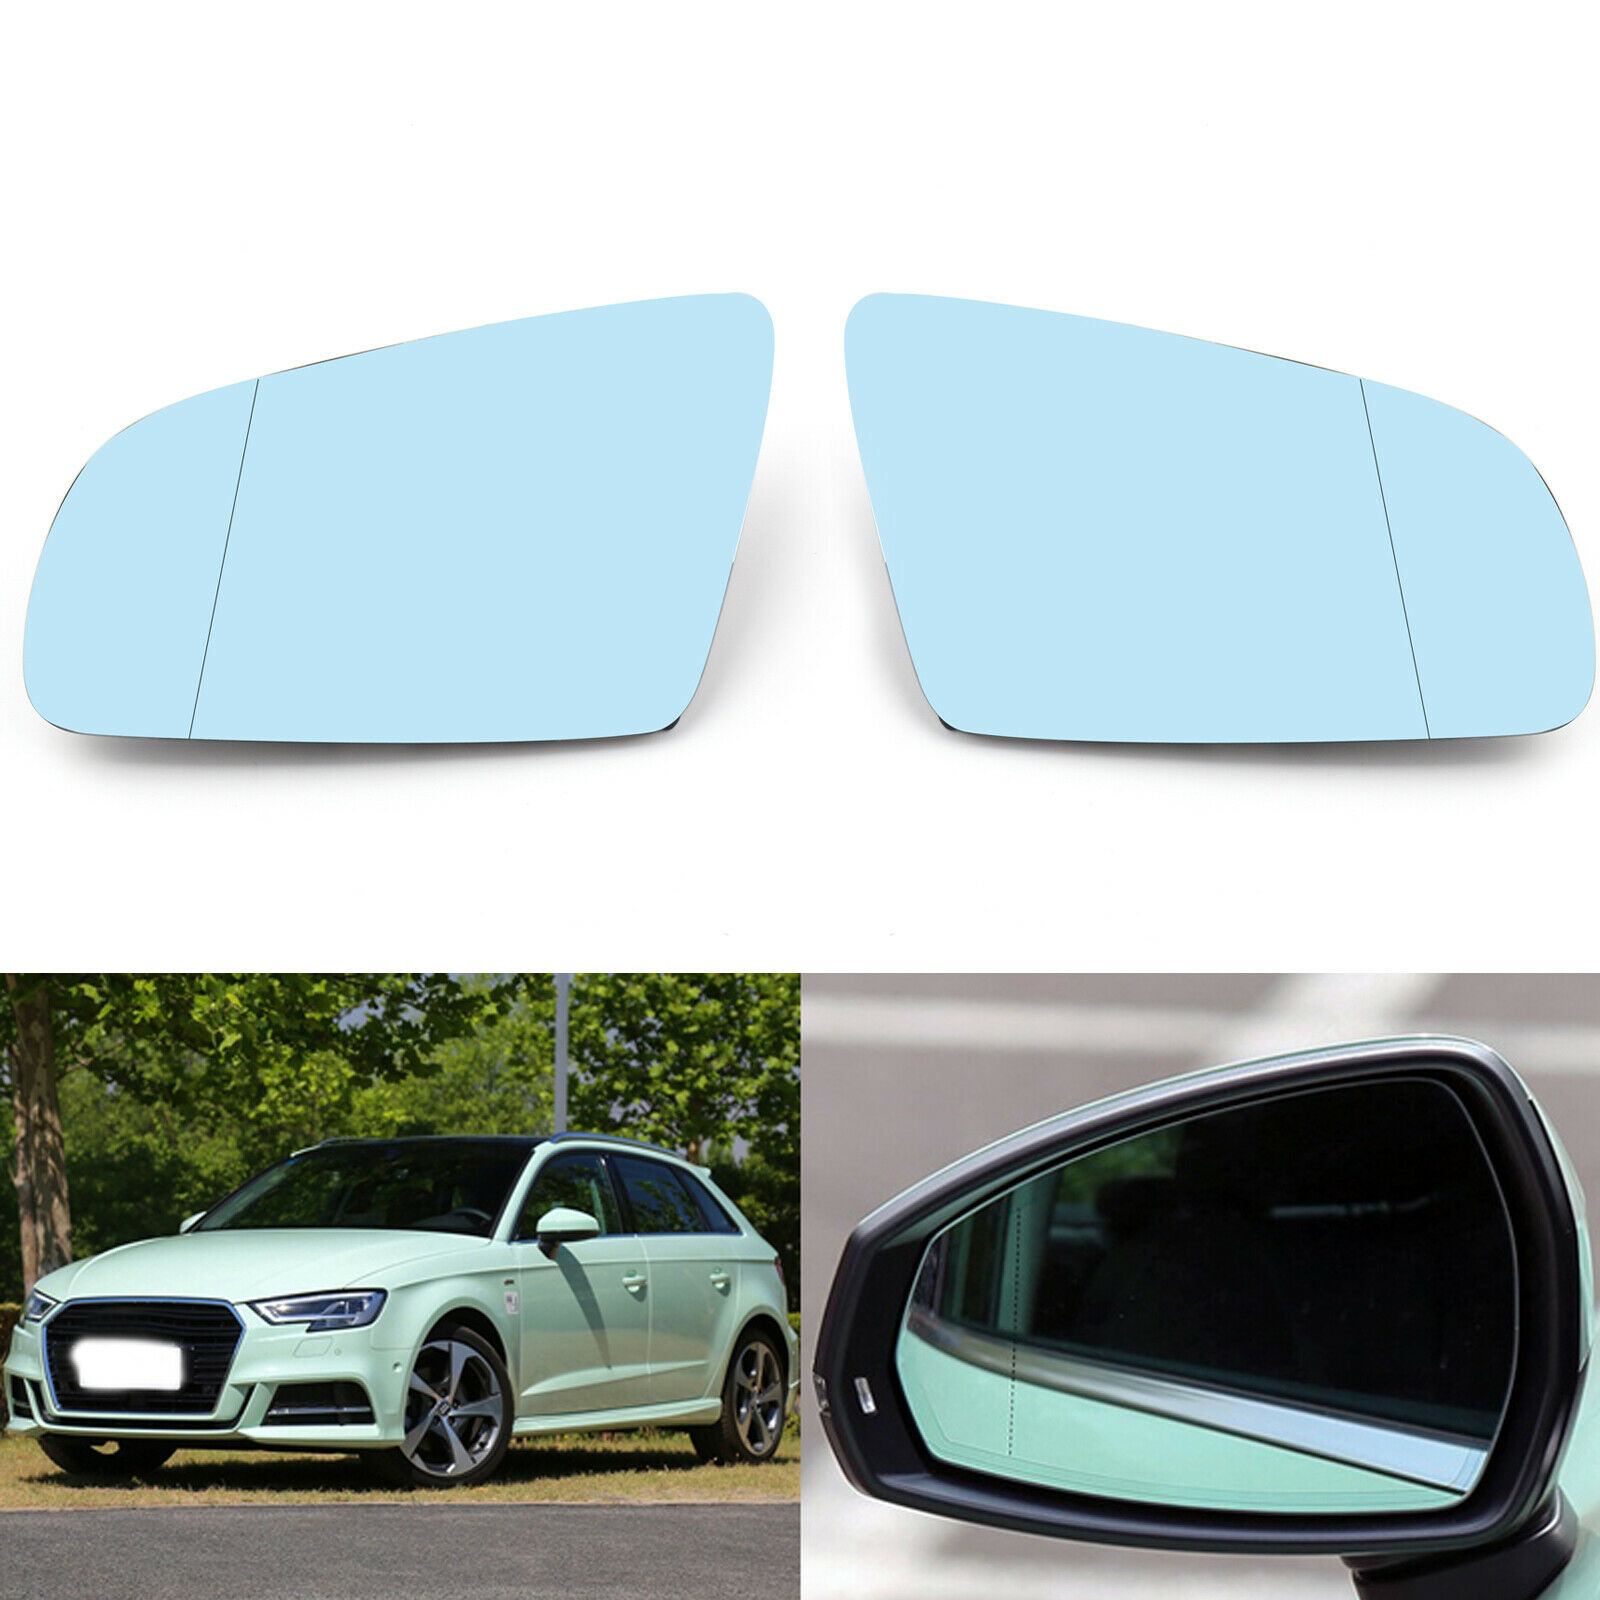 Car RearMirror Glass Anti-glare Blue Glass Wing Side For Mercedes <font><b>Benz</b></font> S-Class CL-Class <font><b>W220</b></font> C215 CL500 <font><b>S500</b></font> 1999 2000 - 2003 image